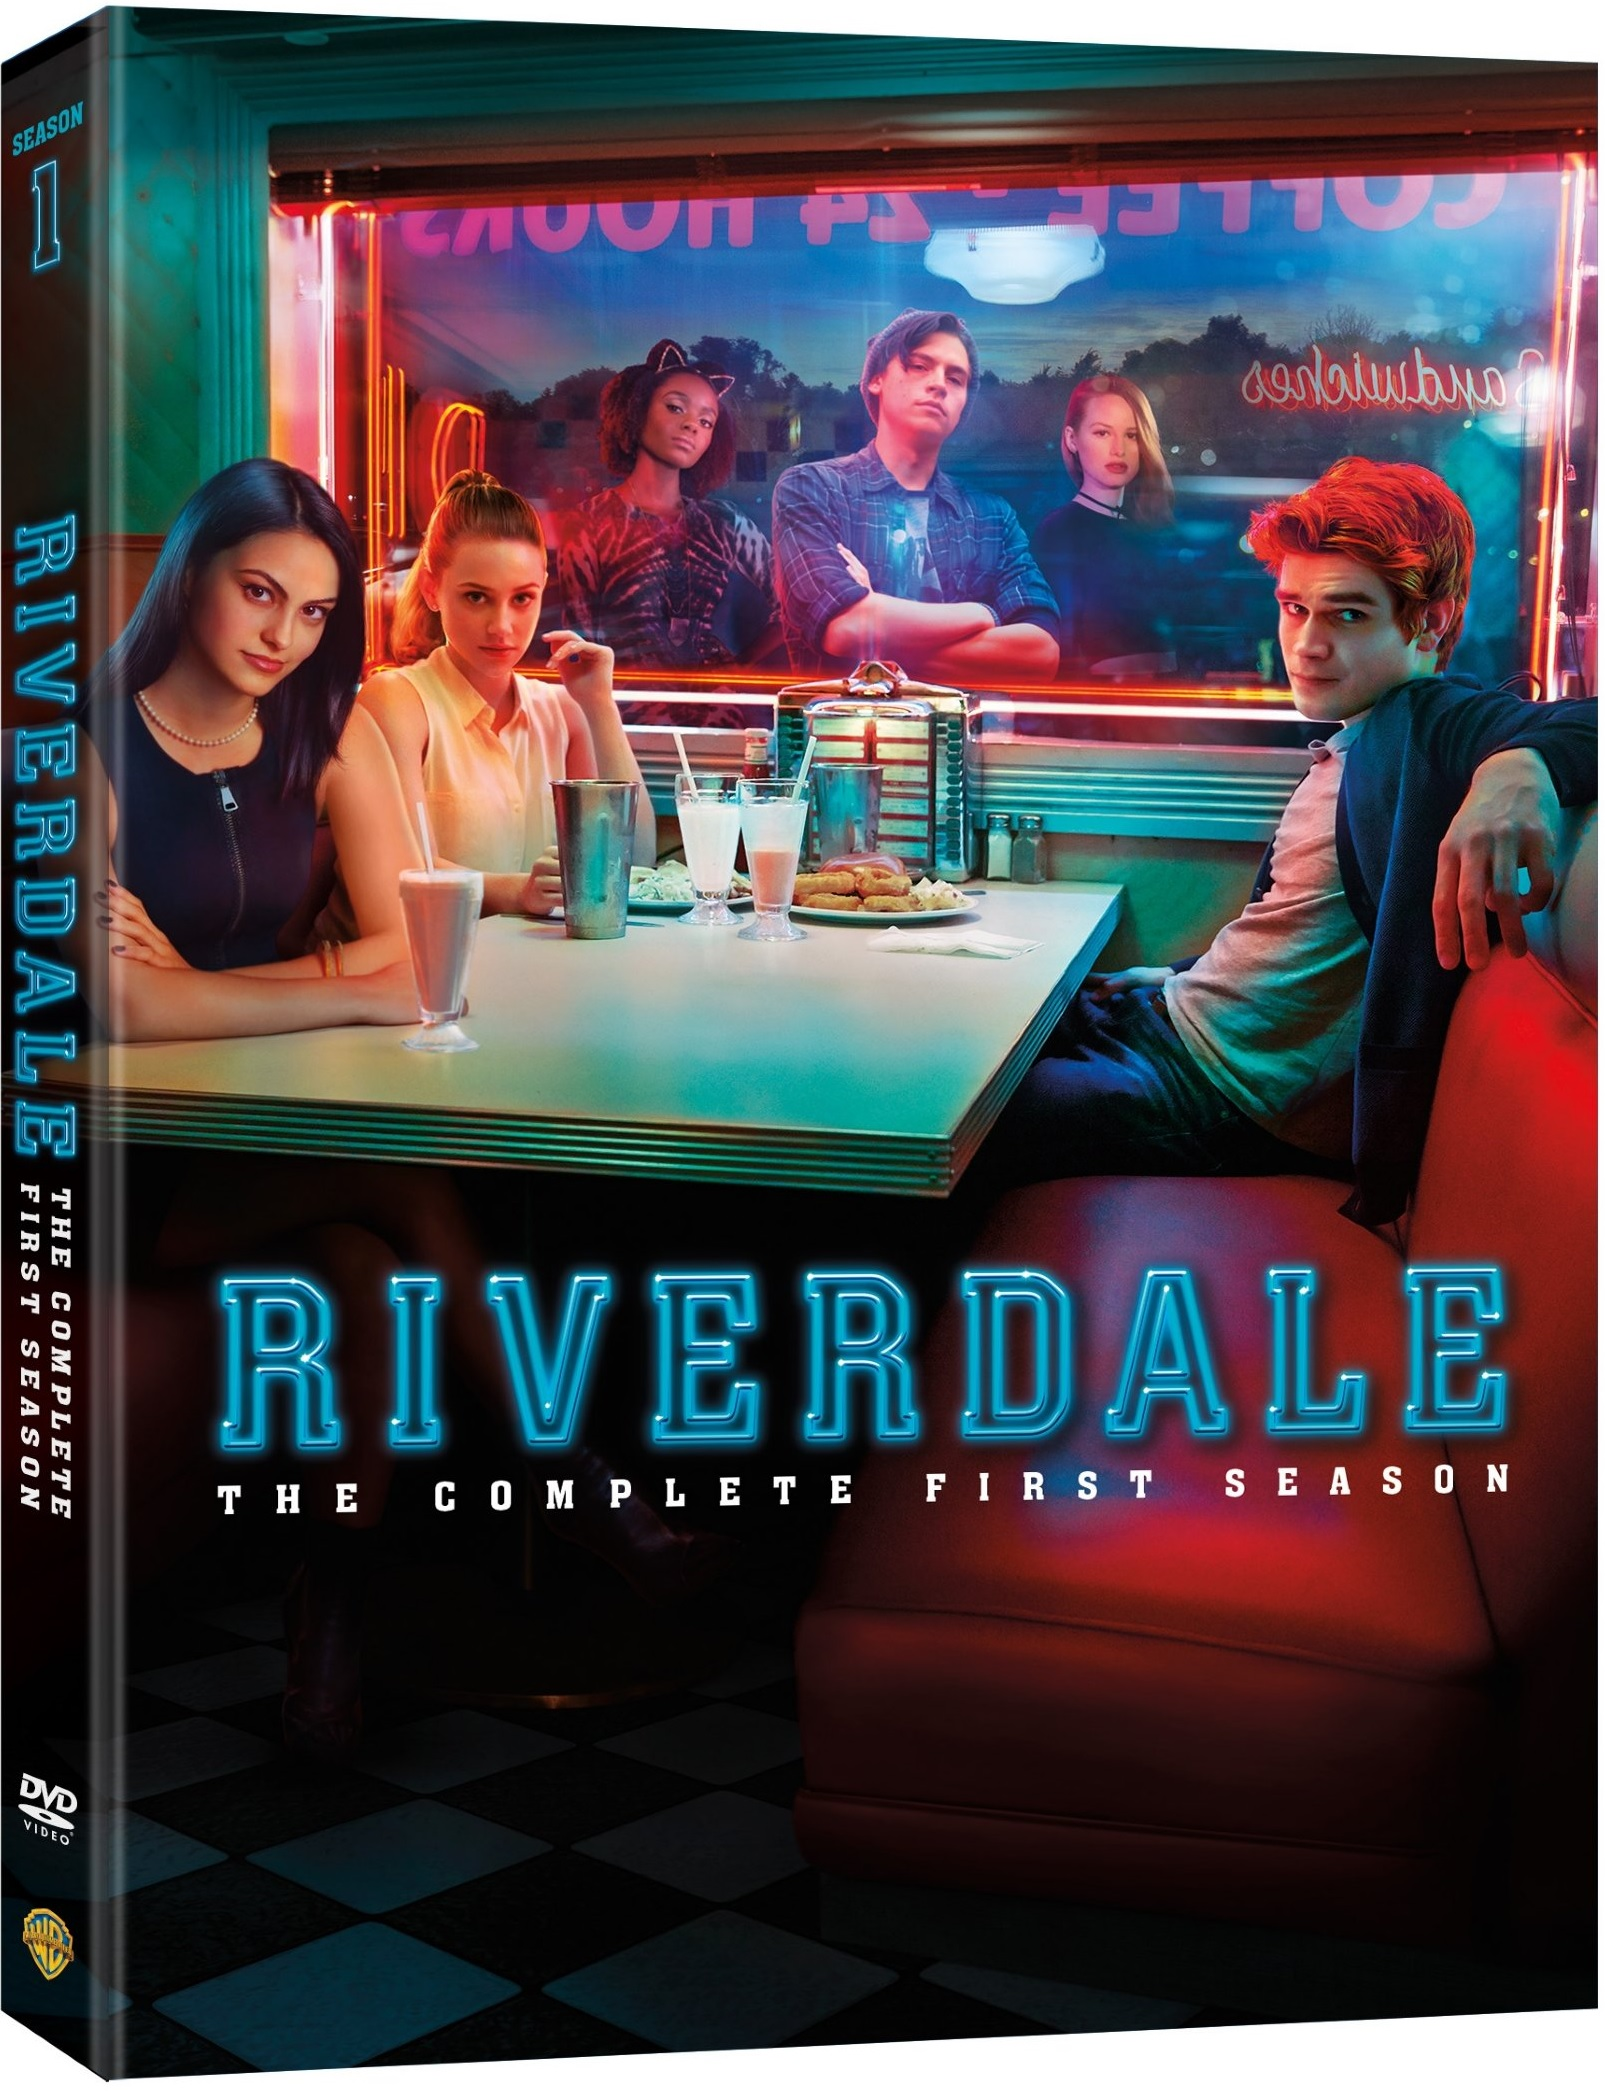 RIVERDALE SEASON ONE OPTION DVD